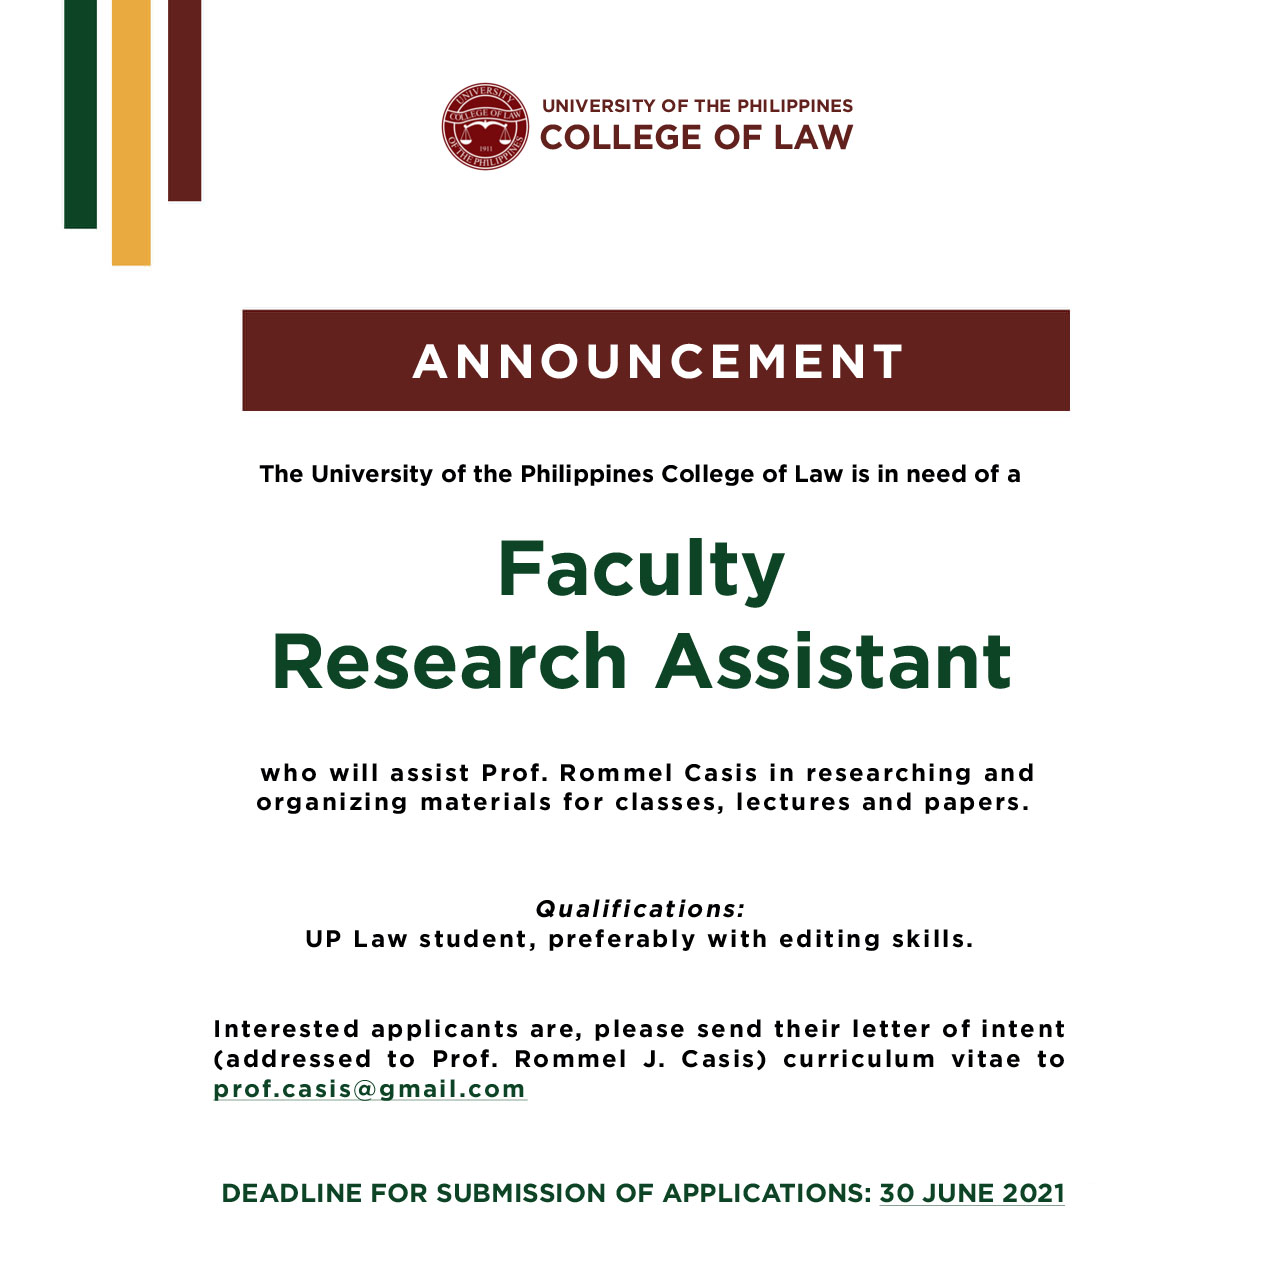 Announcement Looking for Faculty Research Assistants.